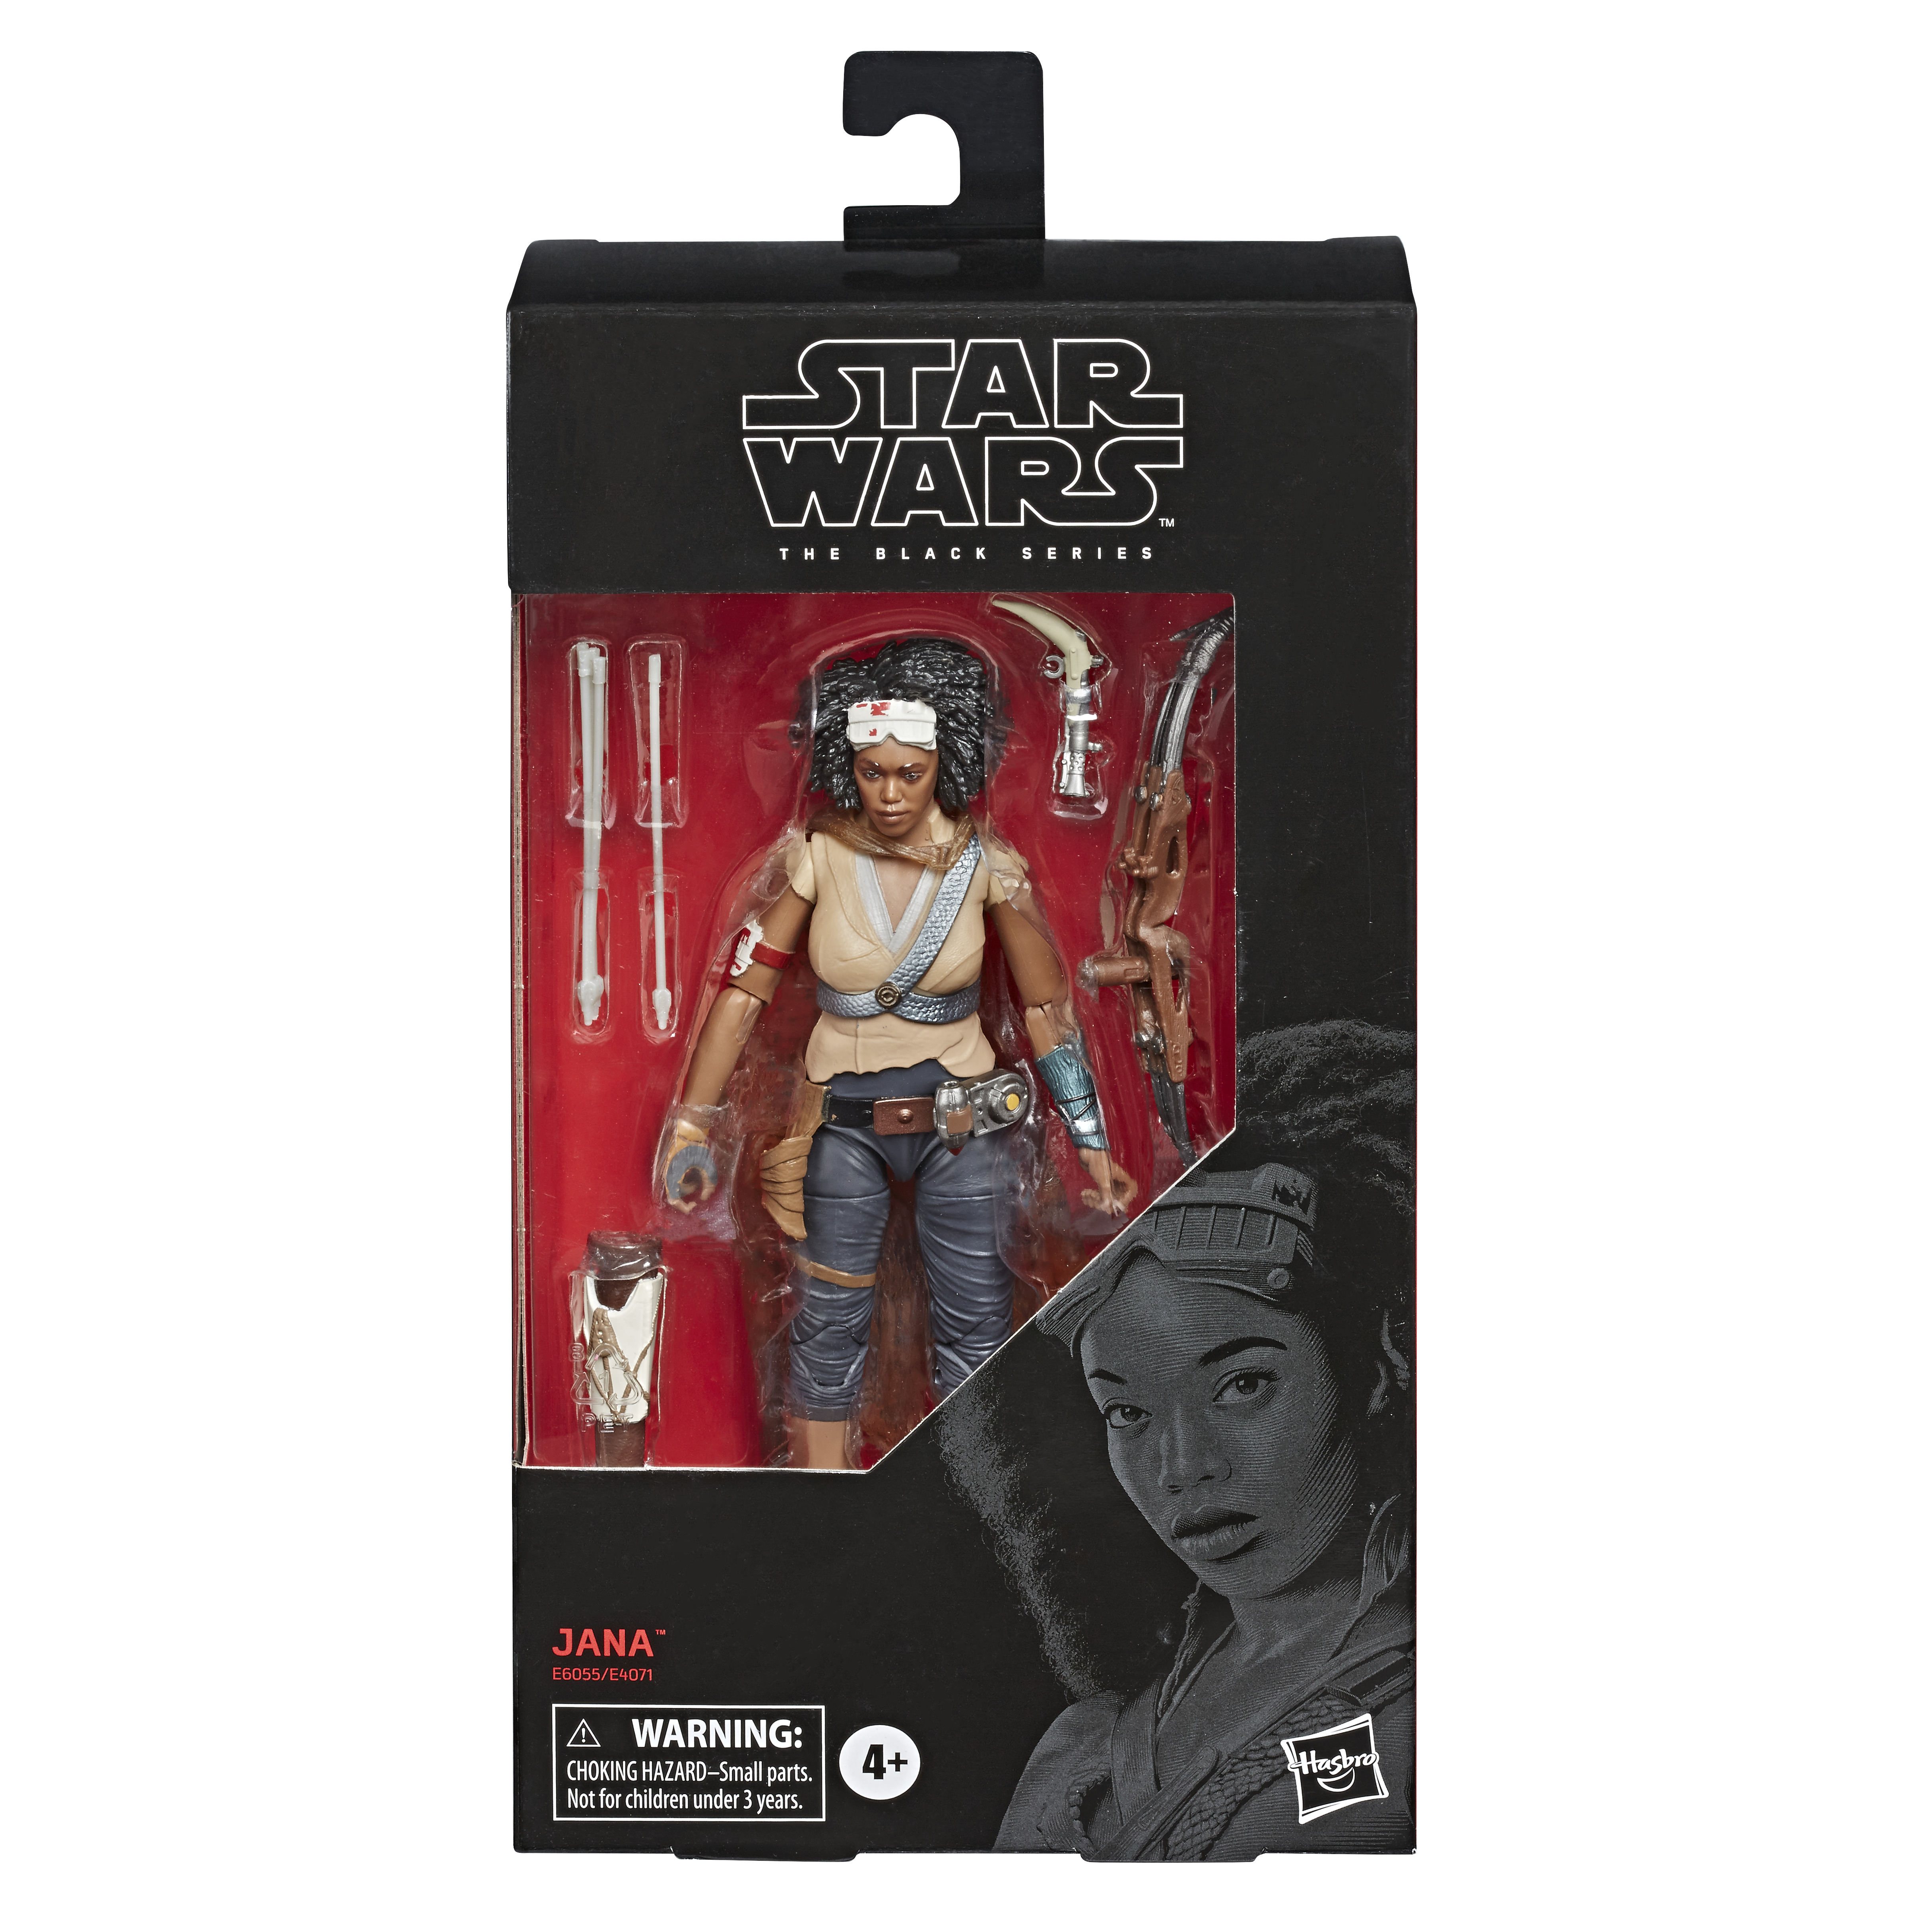 Star Wars The Black Series Jannah 15cm E6055 5010993635566